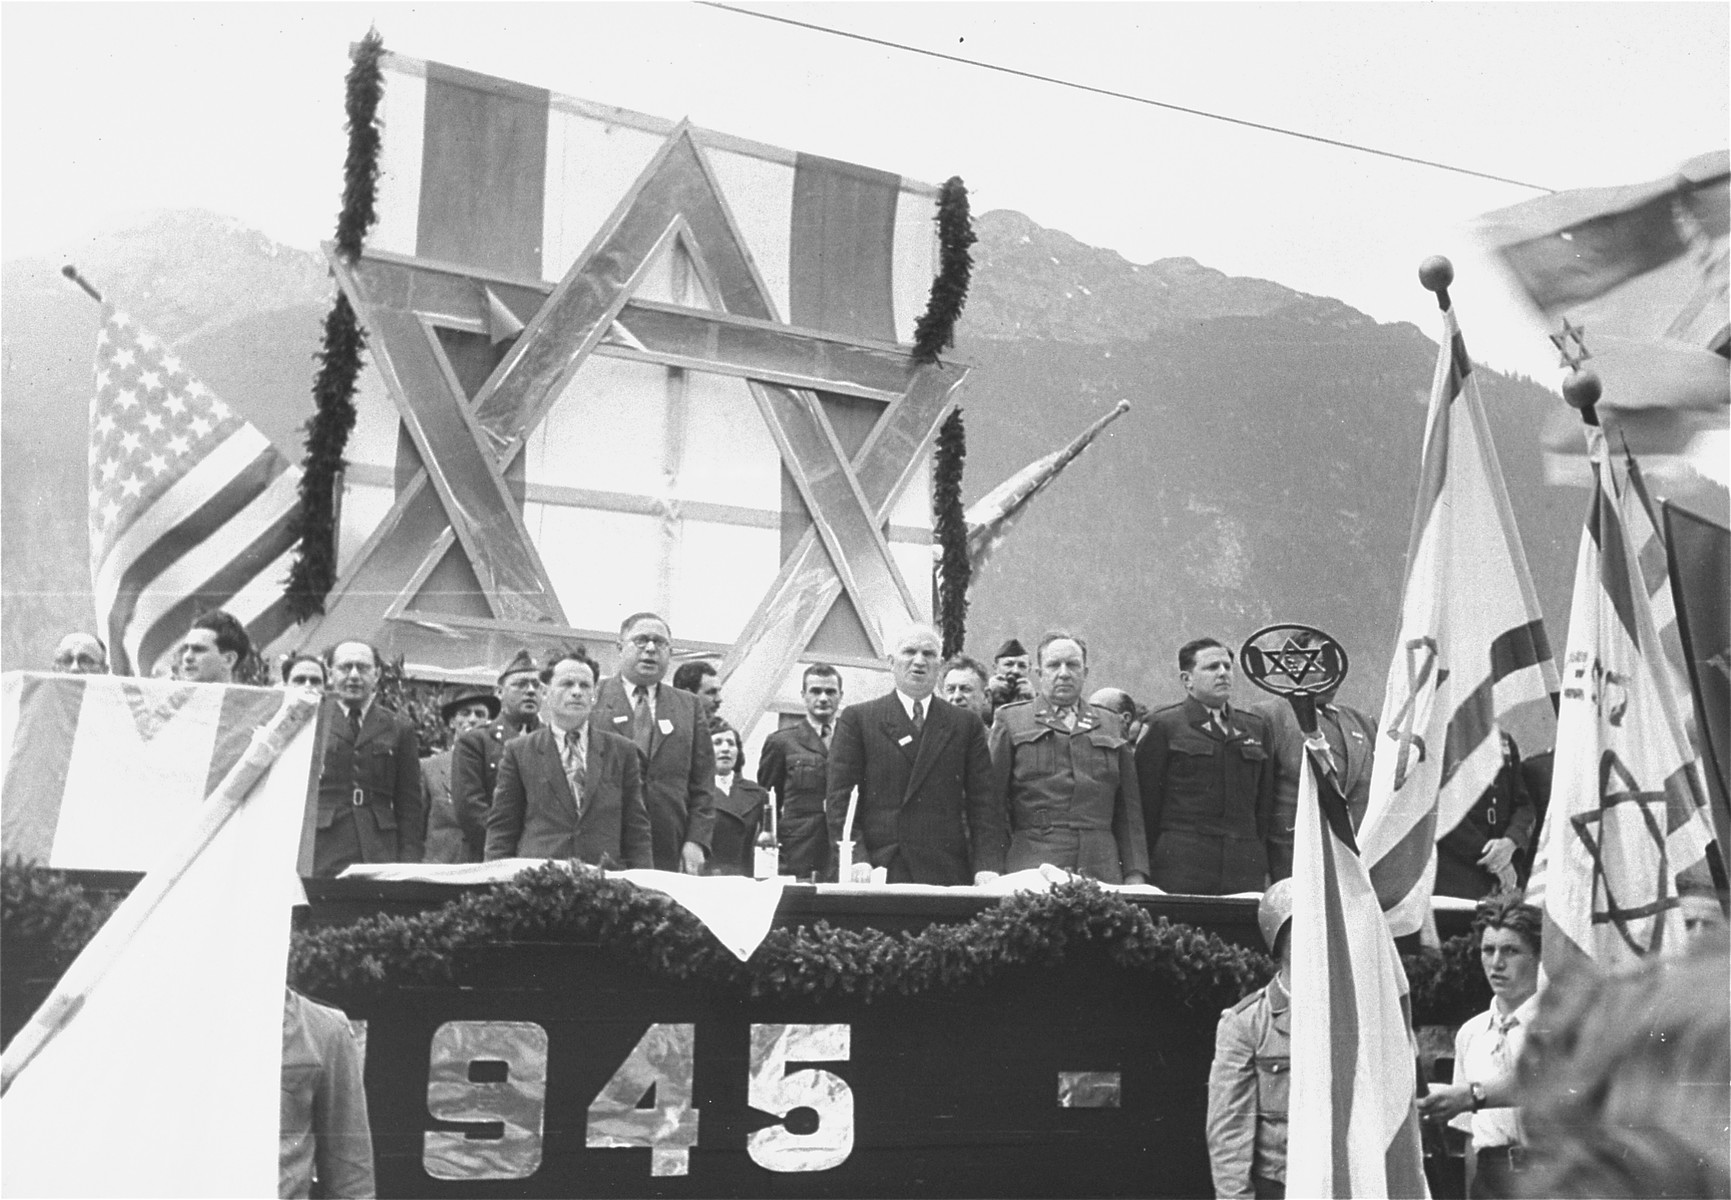 David Treger (front row, center in white hair), President of the Central Committee of the Liberated Jews in Bavaria, stands on the speakers platform with other DP leaders and official guests at a public meeting held in the Mittenwald displaced persons camp to protest British immigration policy in Palestine and to commemorate the death march from Dachau to Tyrol.